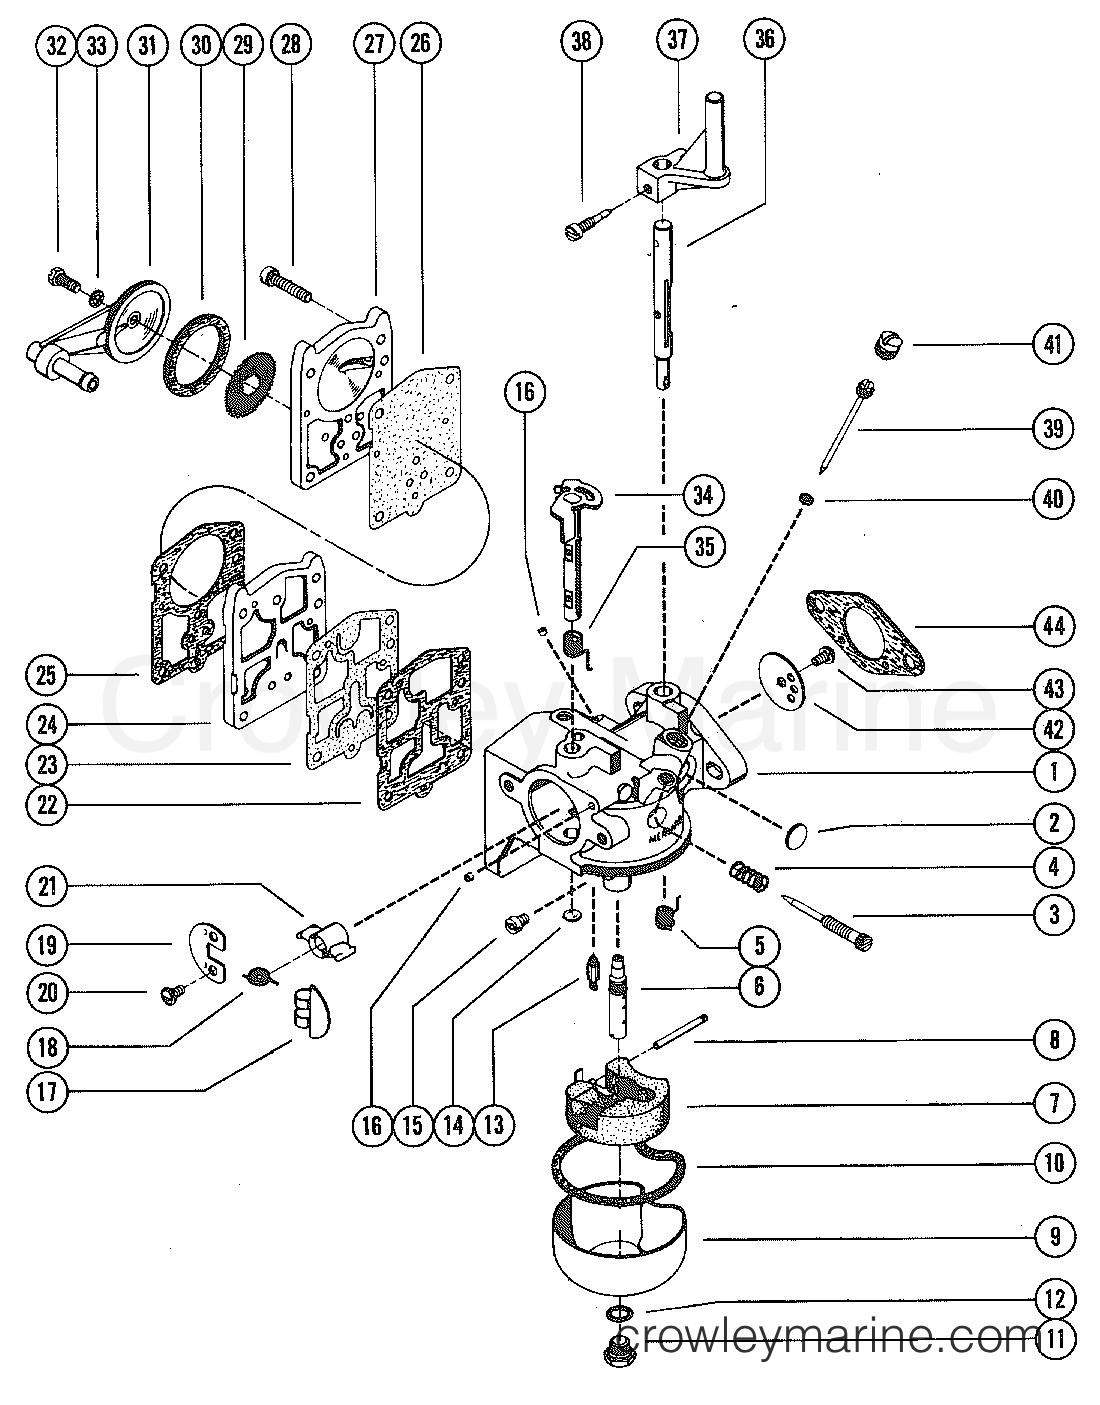 hight resolution of carburetor assembly complete 1975 mercury outboard 9 8 1110205 mercury 25hp 2 stroke carb diagram mercury carb diagram